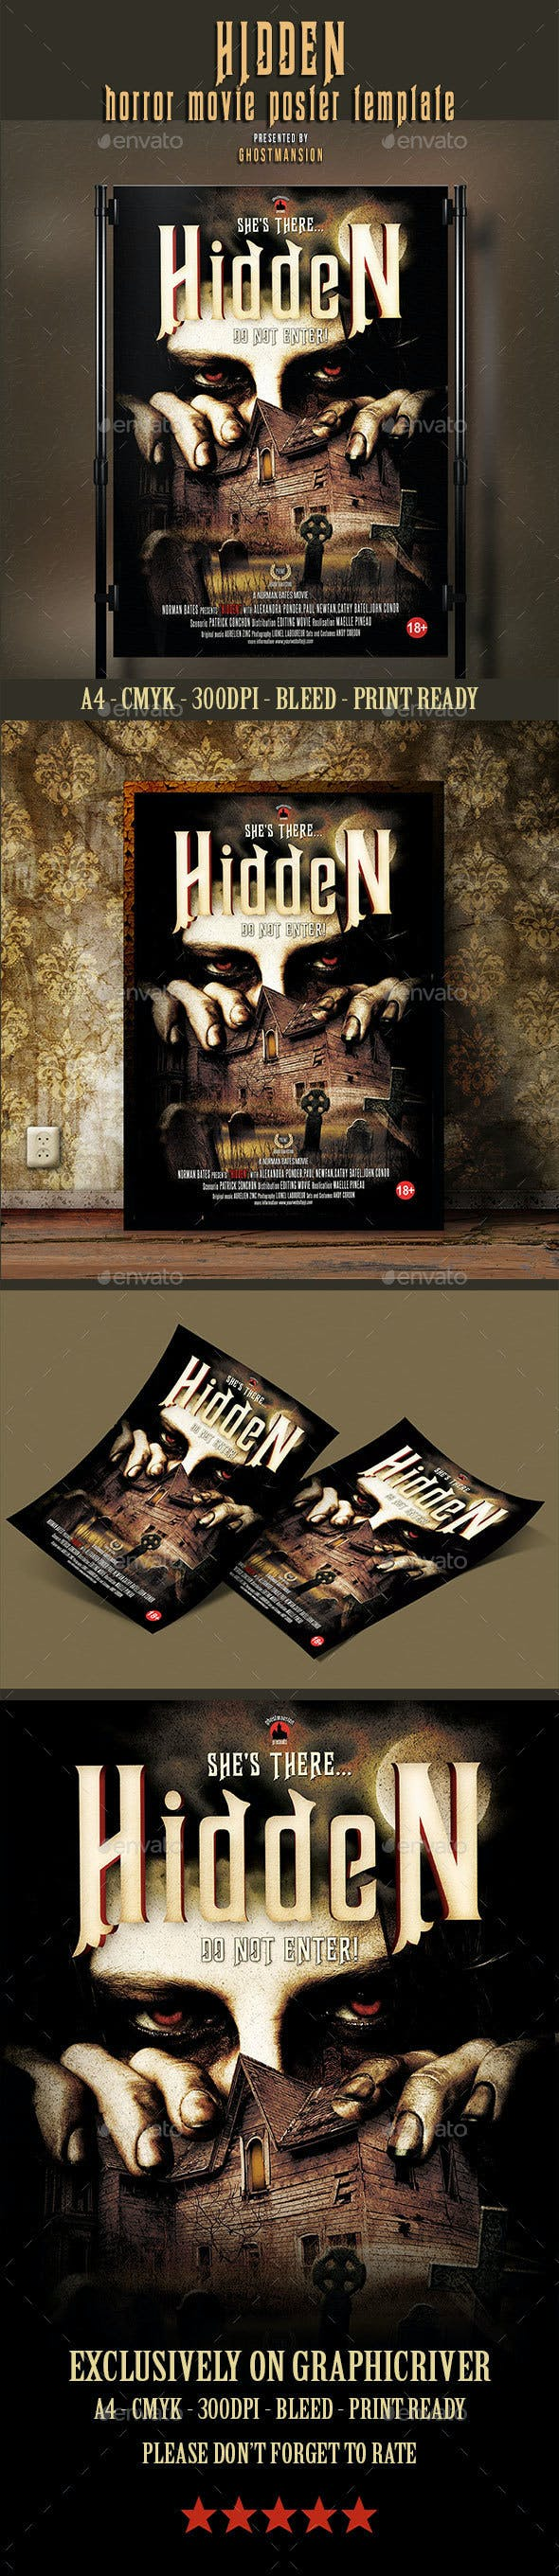 hidden horror movie poster template by ghostmansion graphicriver